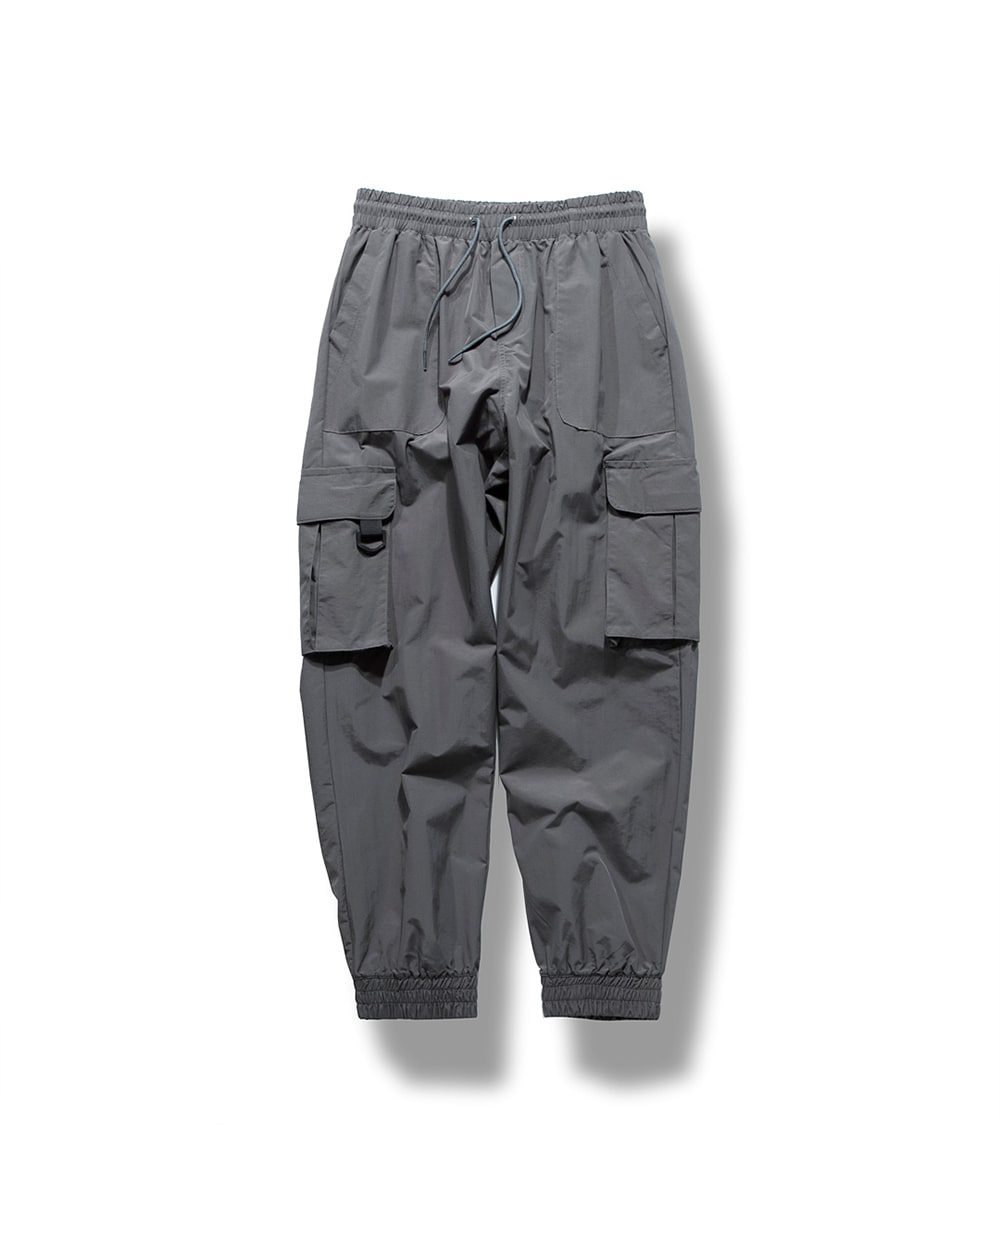 (VLADIMIR) WATERPROOF JOGGER PANTS GRAY